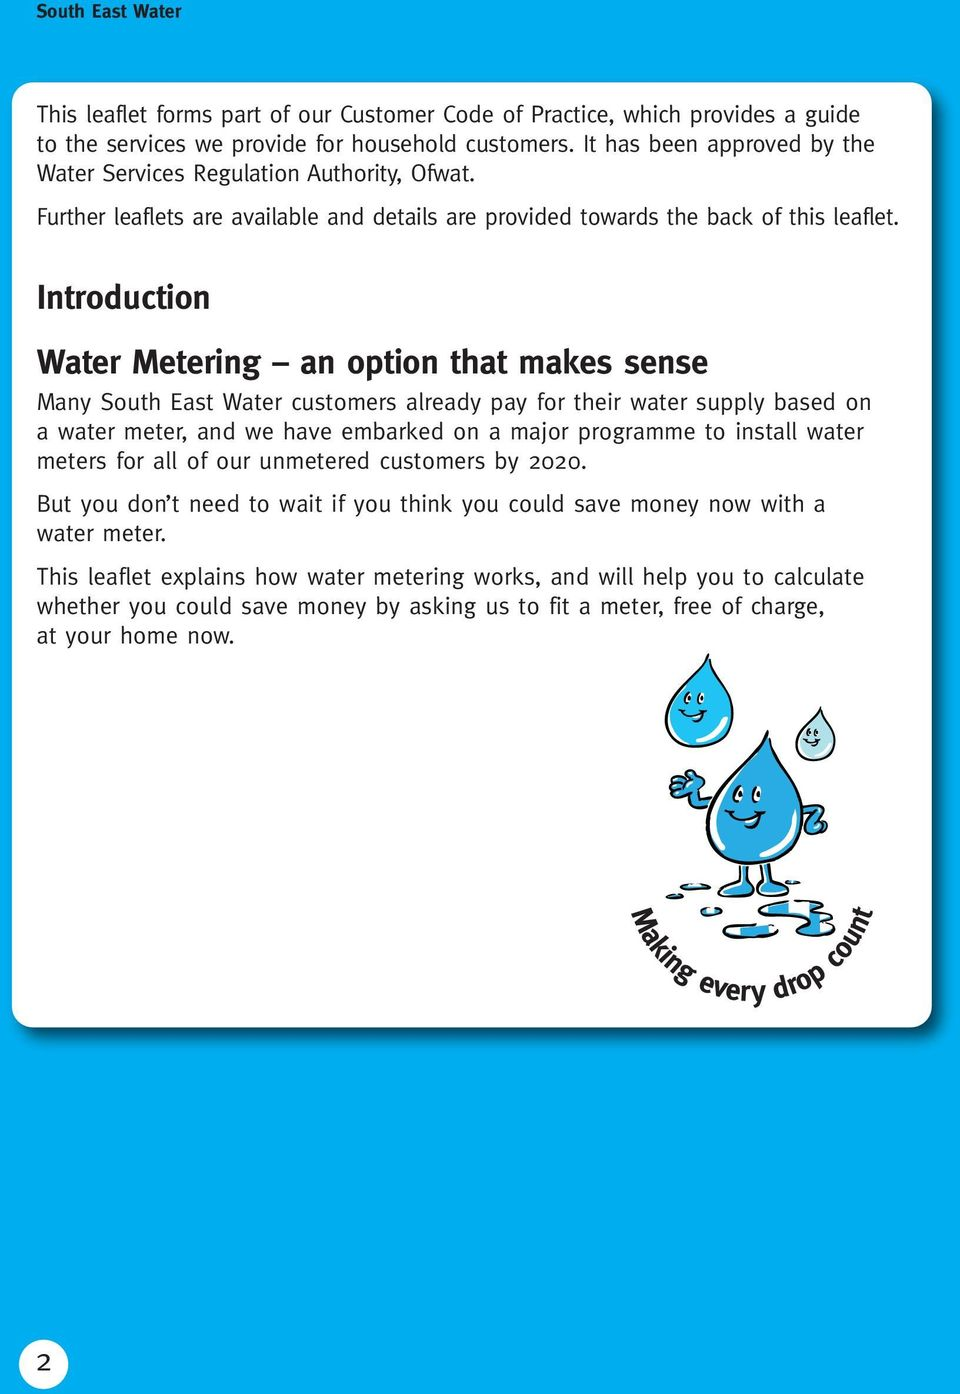 Introduction Water Metering an option that makes sense Many South East Water customers already pay for their water supply based on a water meter, and we have embarked on a major programme to install